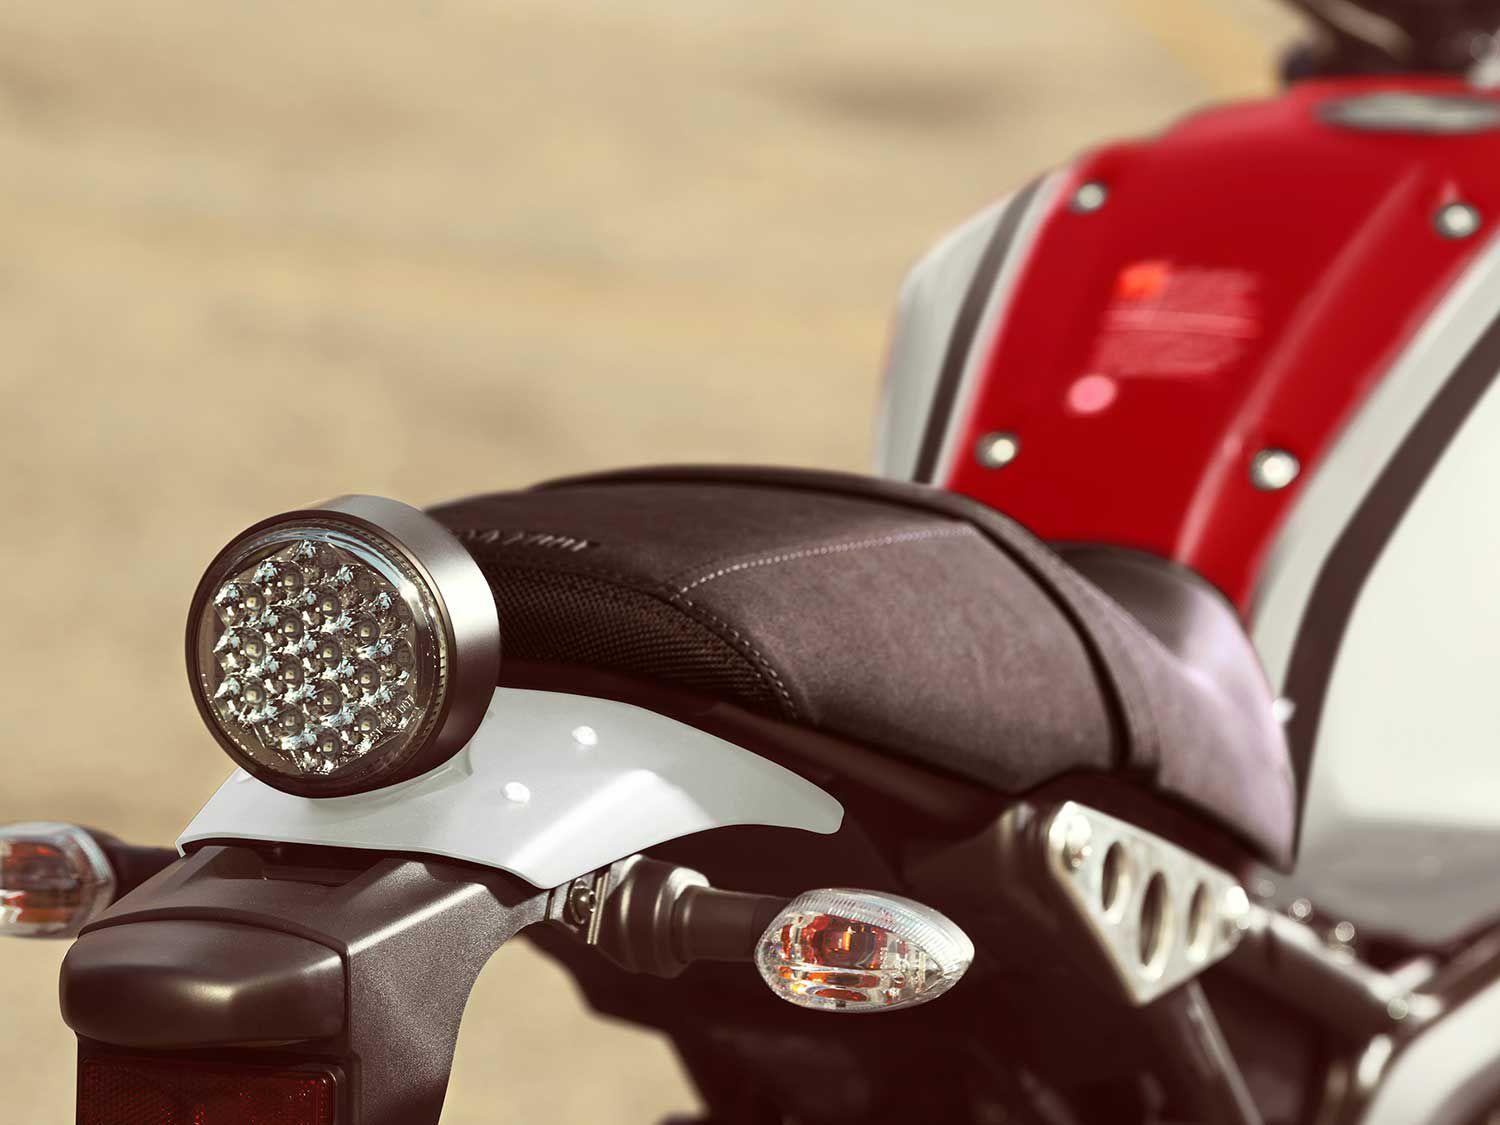 That classic round Yamaha taillight is all LED.